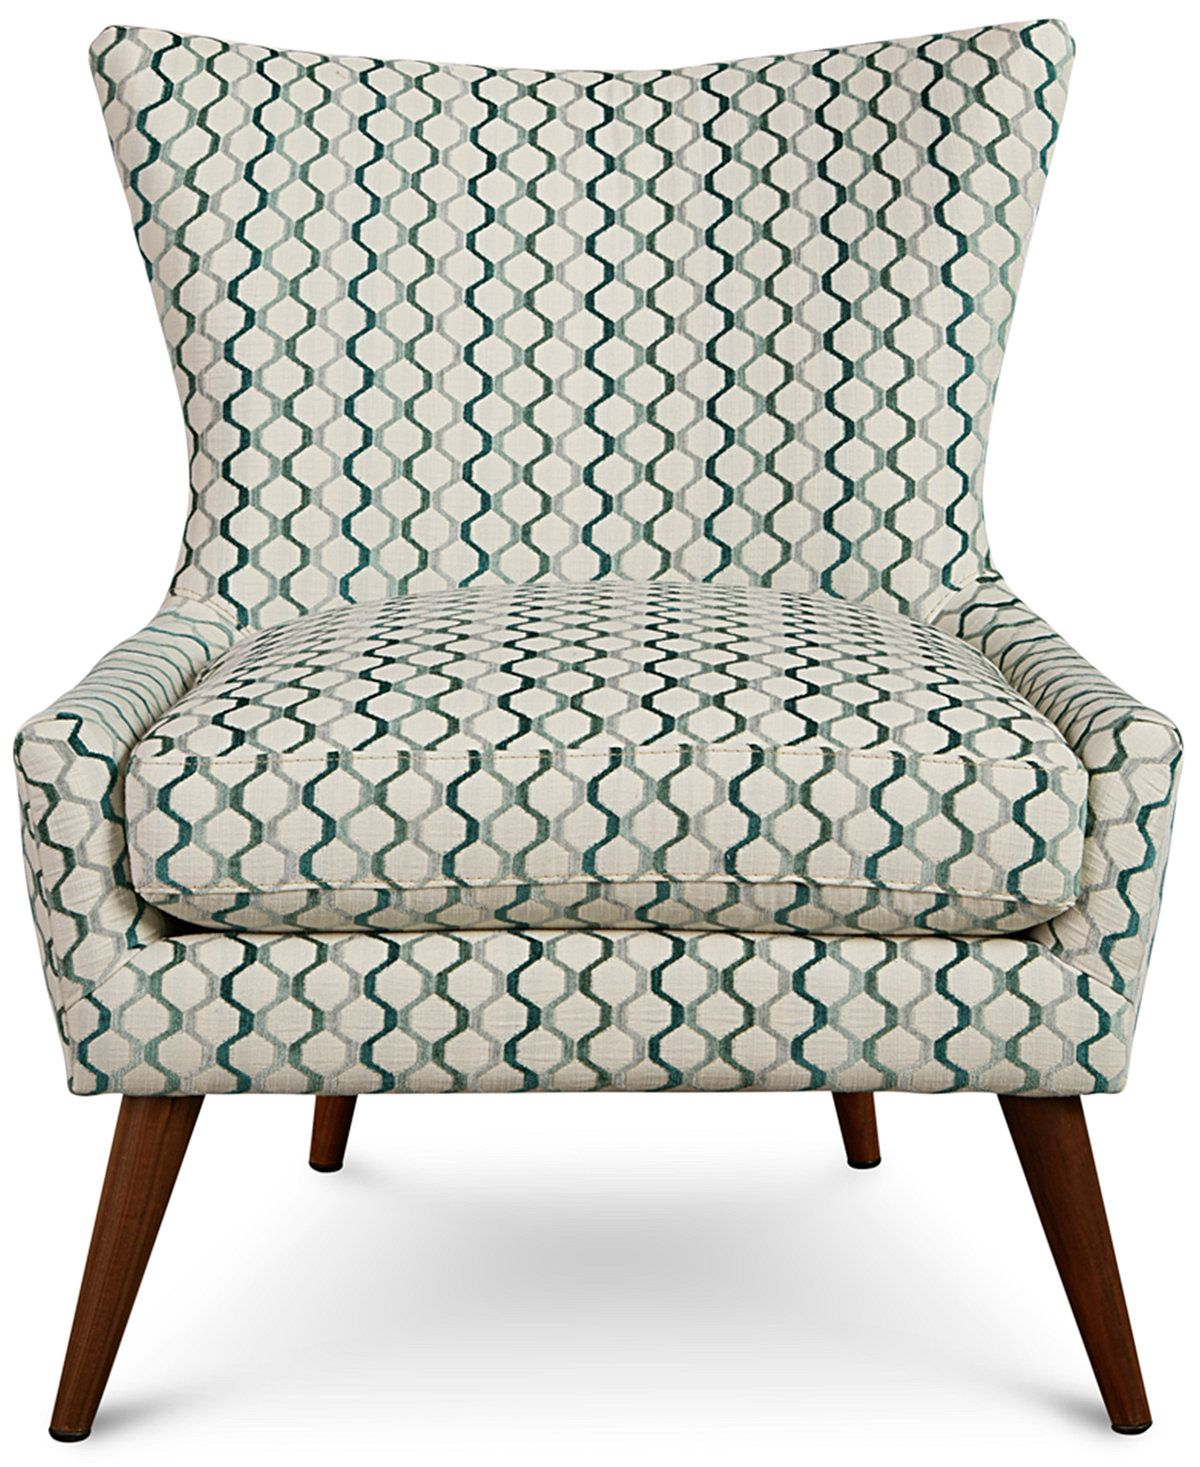 Arielle Printed Accent Chair Only At Macy S Chairs Recliners Furniture Macy S Printed Accent Chairs Accent Chairs Chair